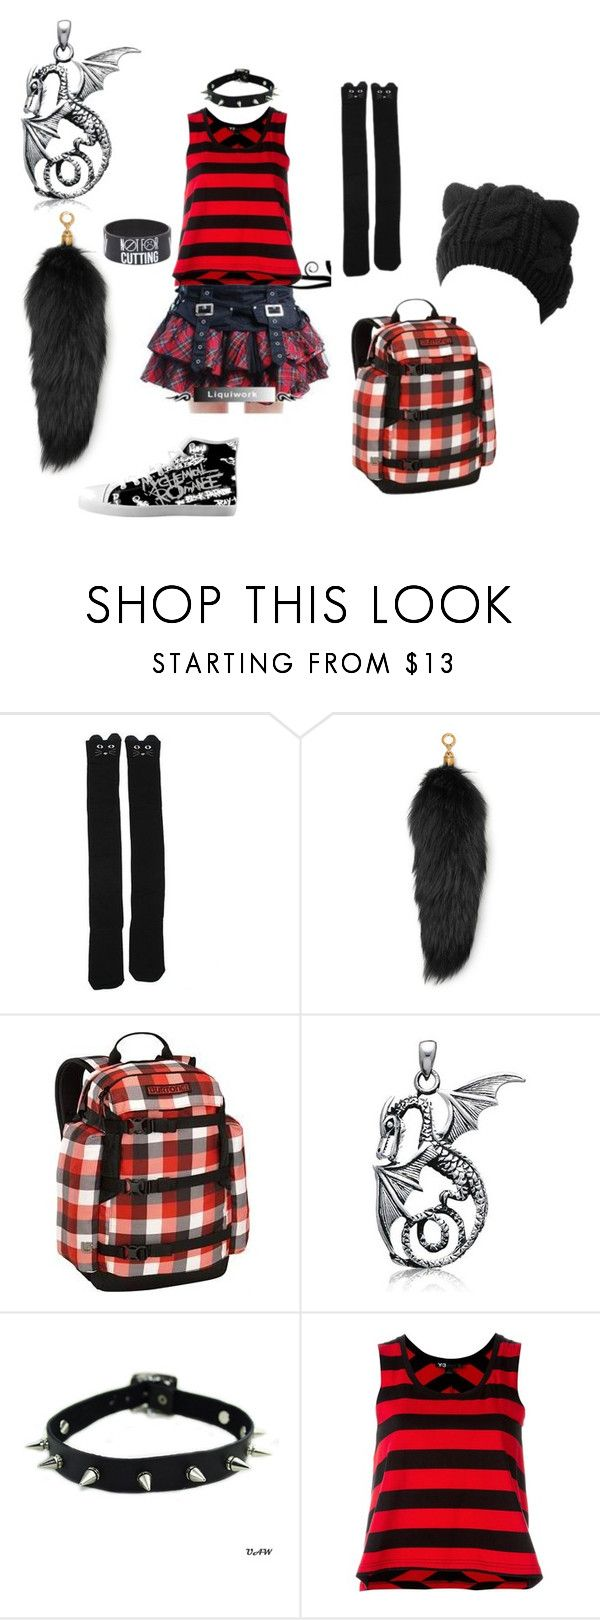 """Erin Elizabeth Pines #3"" by sidaotic-haack ❤ liked on Polyvore featuring Kate Spade, Michael Kors, Burton, Bling Jewelry and Y-3"